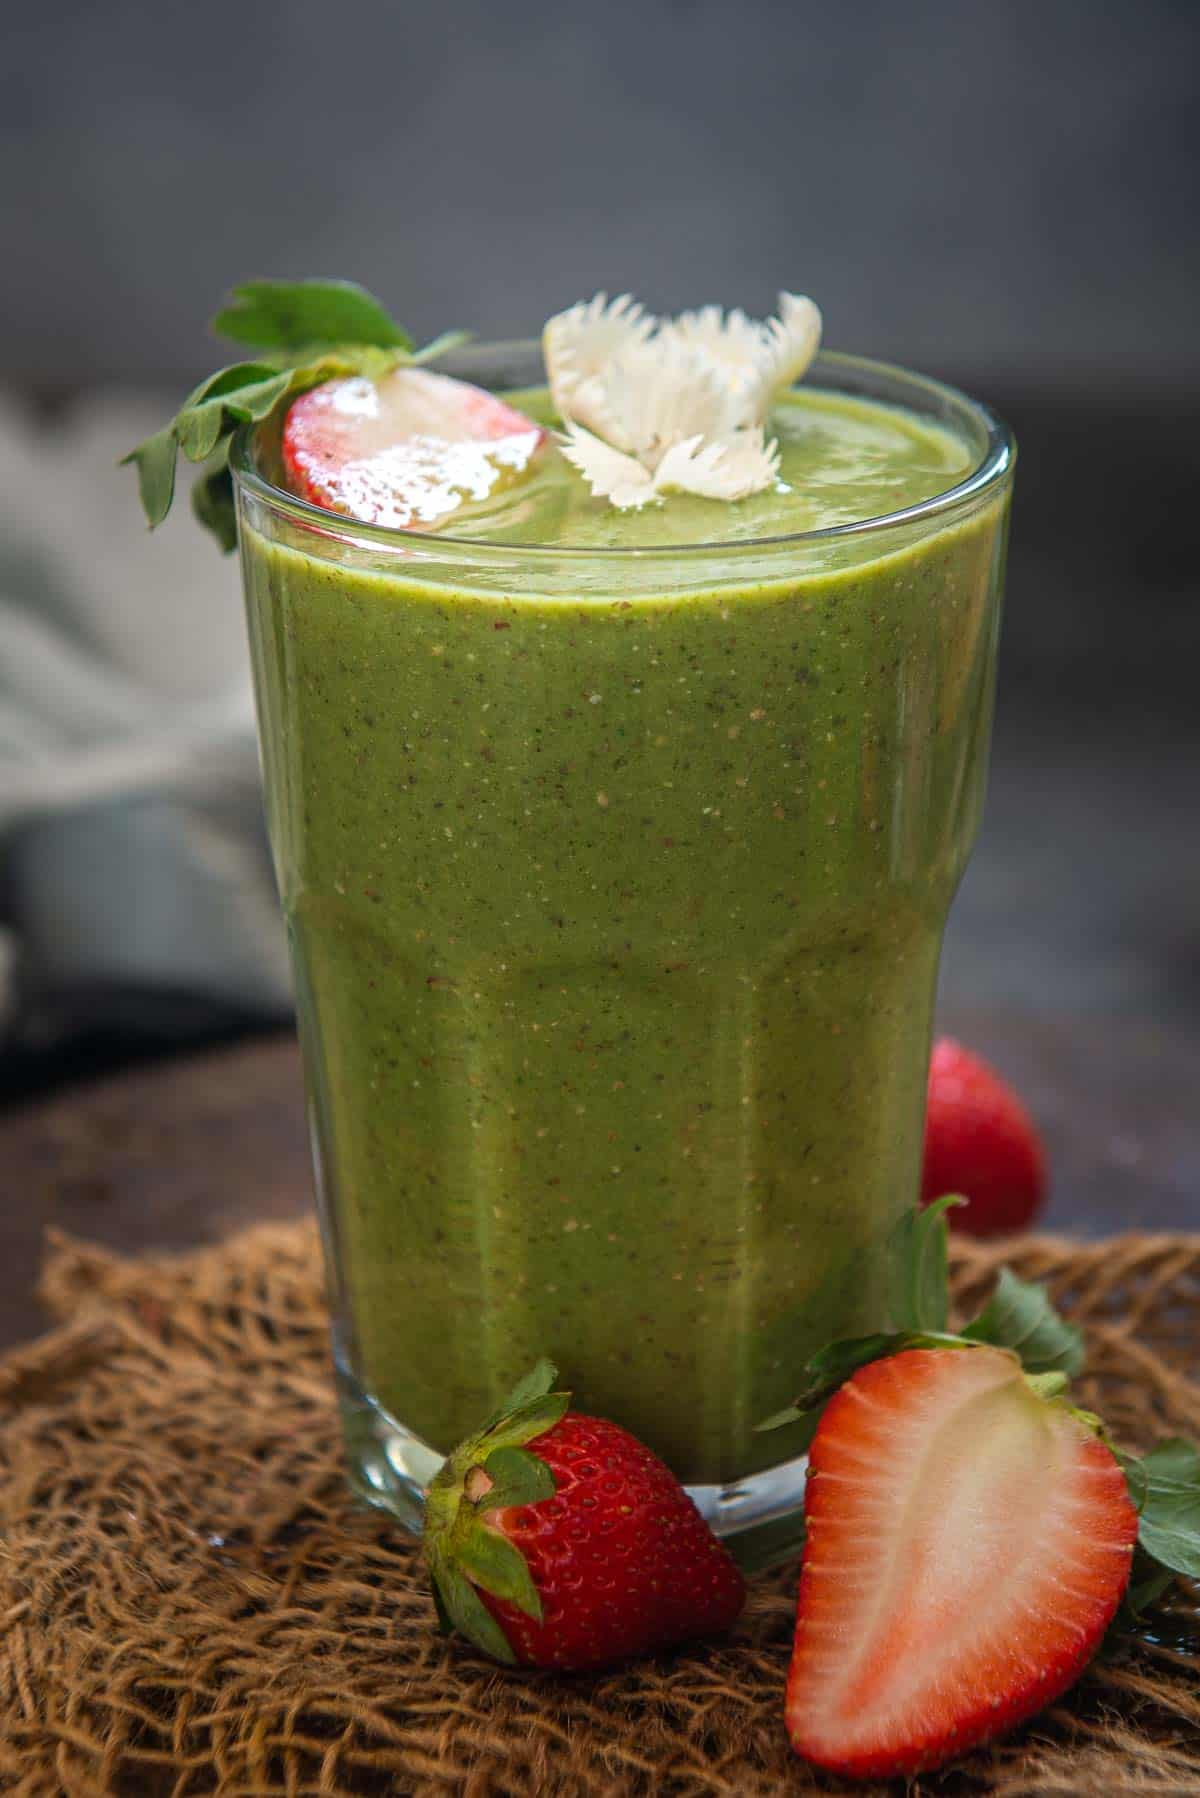 Strawberry Spinach Smoothie served in a glass.